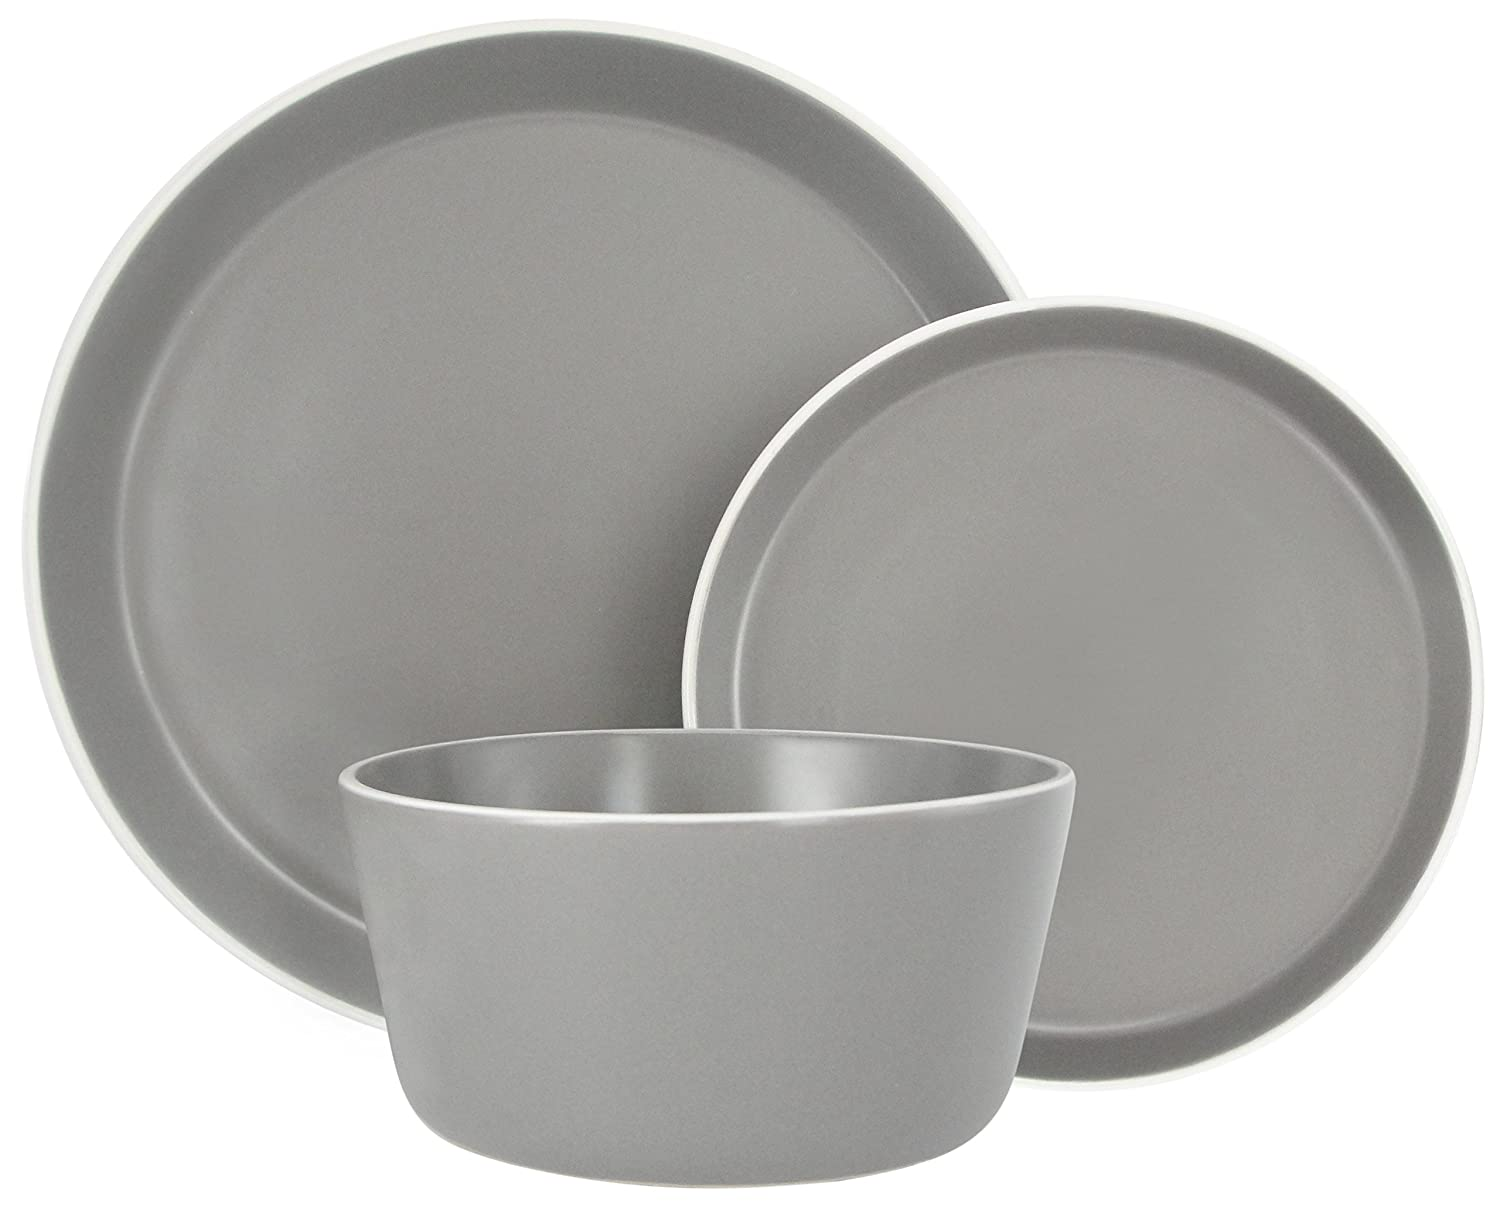 Melange Stoneware 18-Piece Dinnerware Set (Moderno Grey) | Service for 6| Microwave, Dishwasher & Oven Safe | Dinner Plate, Salad Plate & Soup Bowl (6 Each)